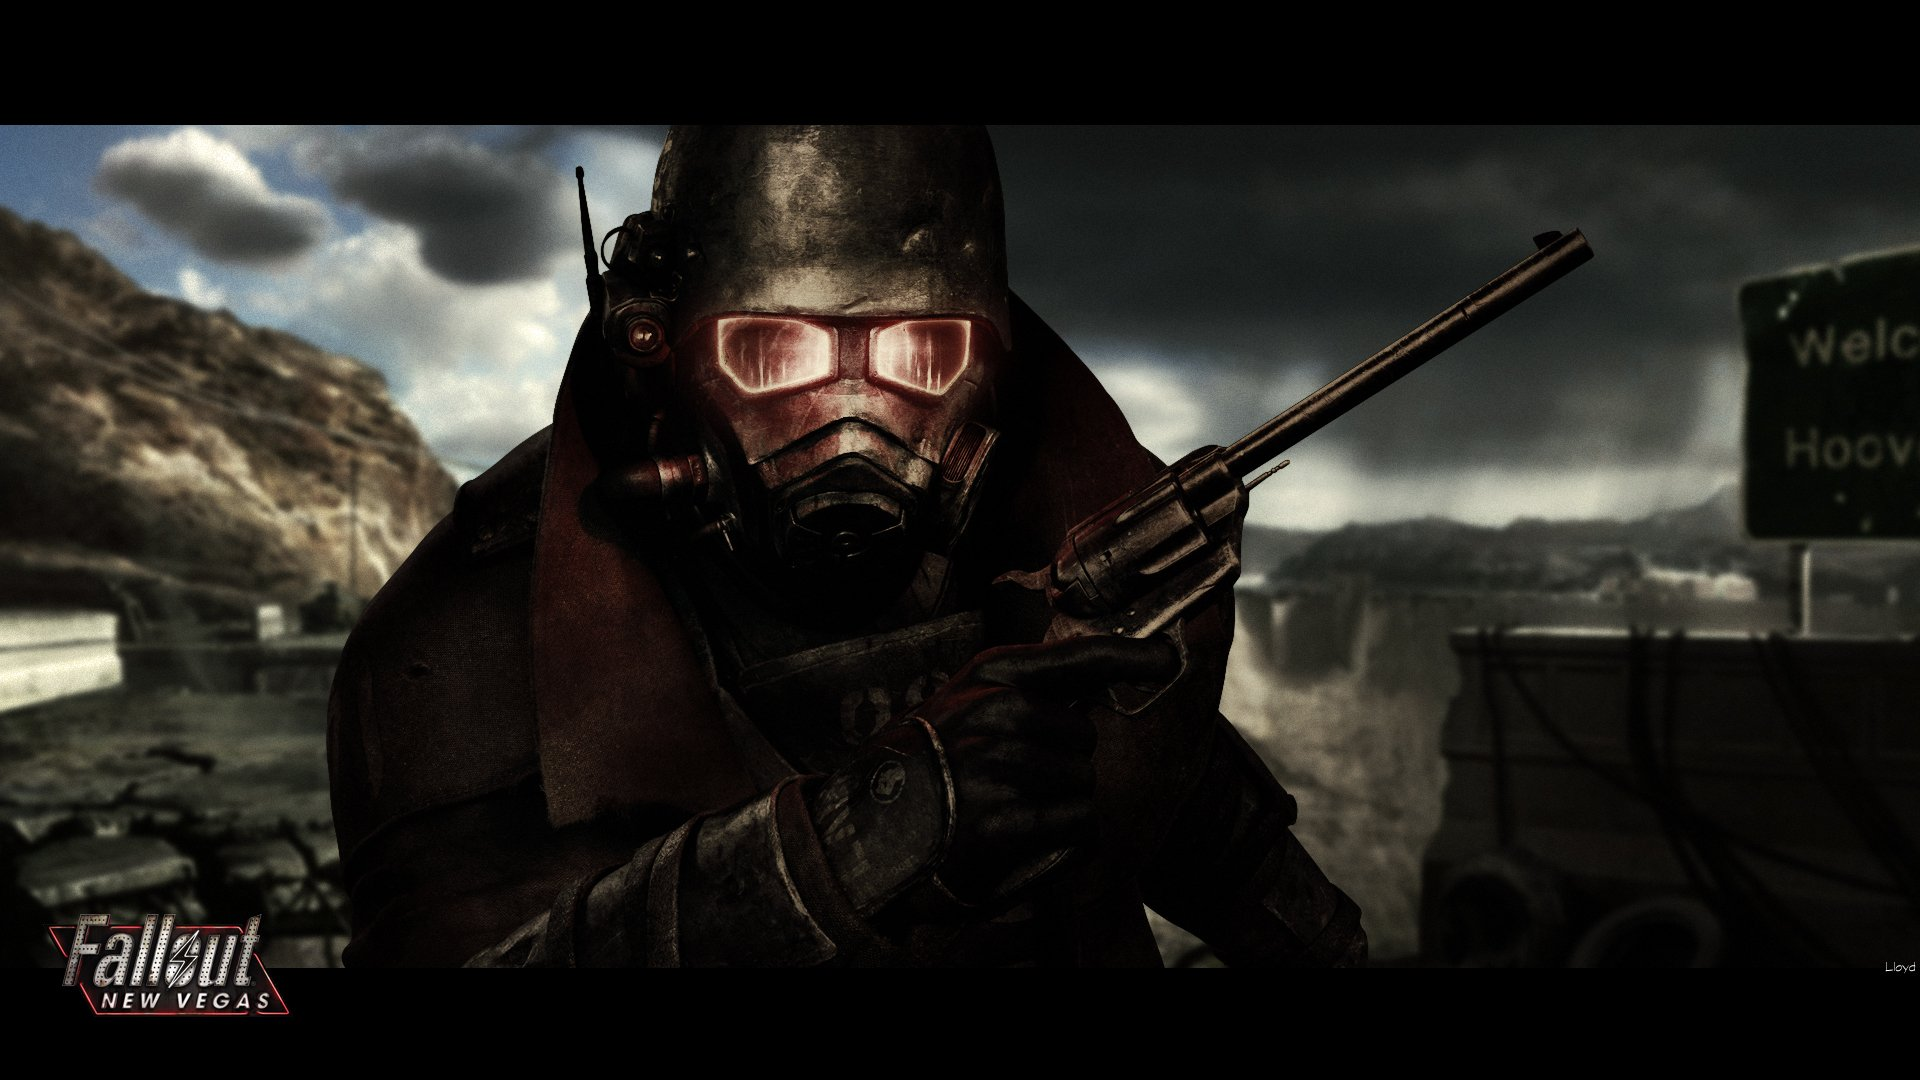 Cool Fallout Wallpapers